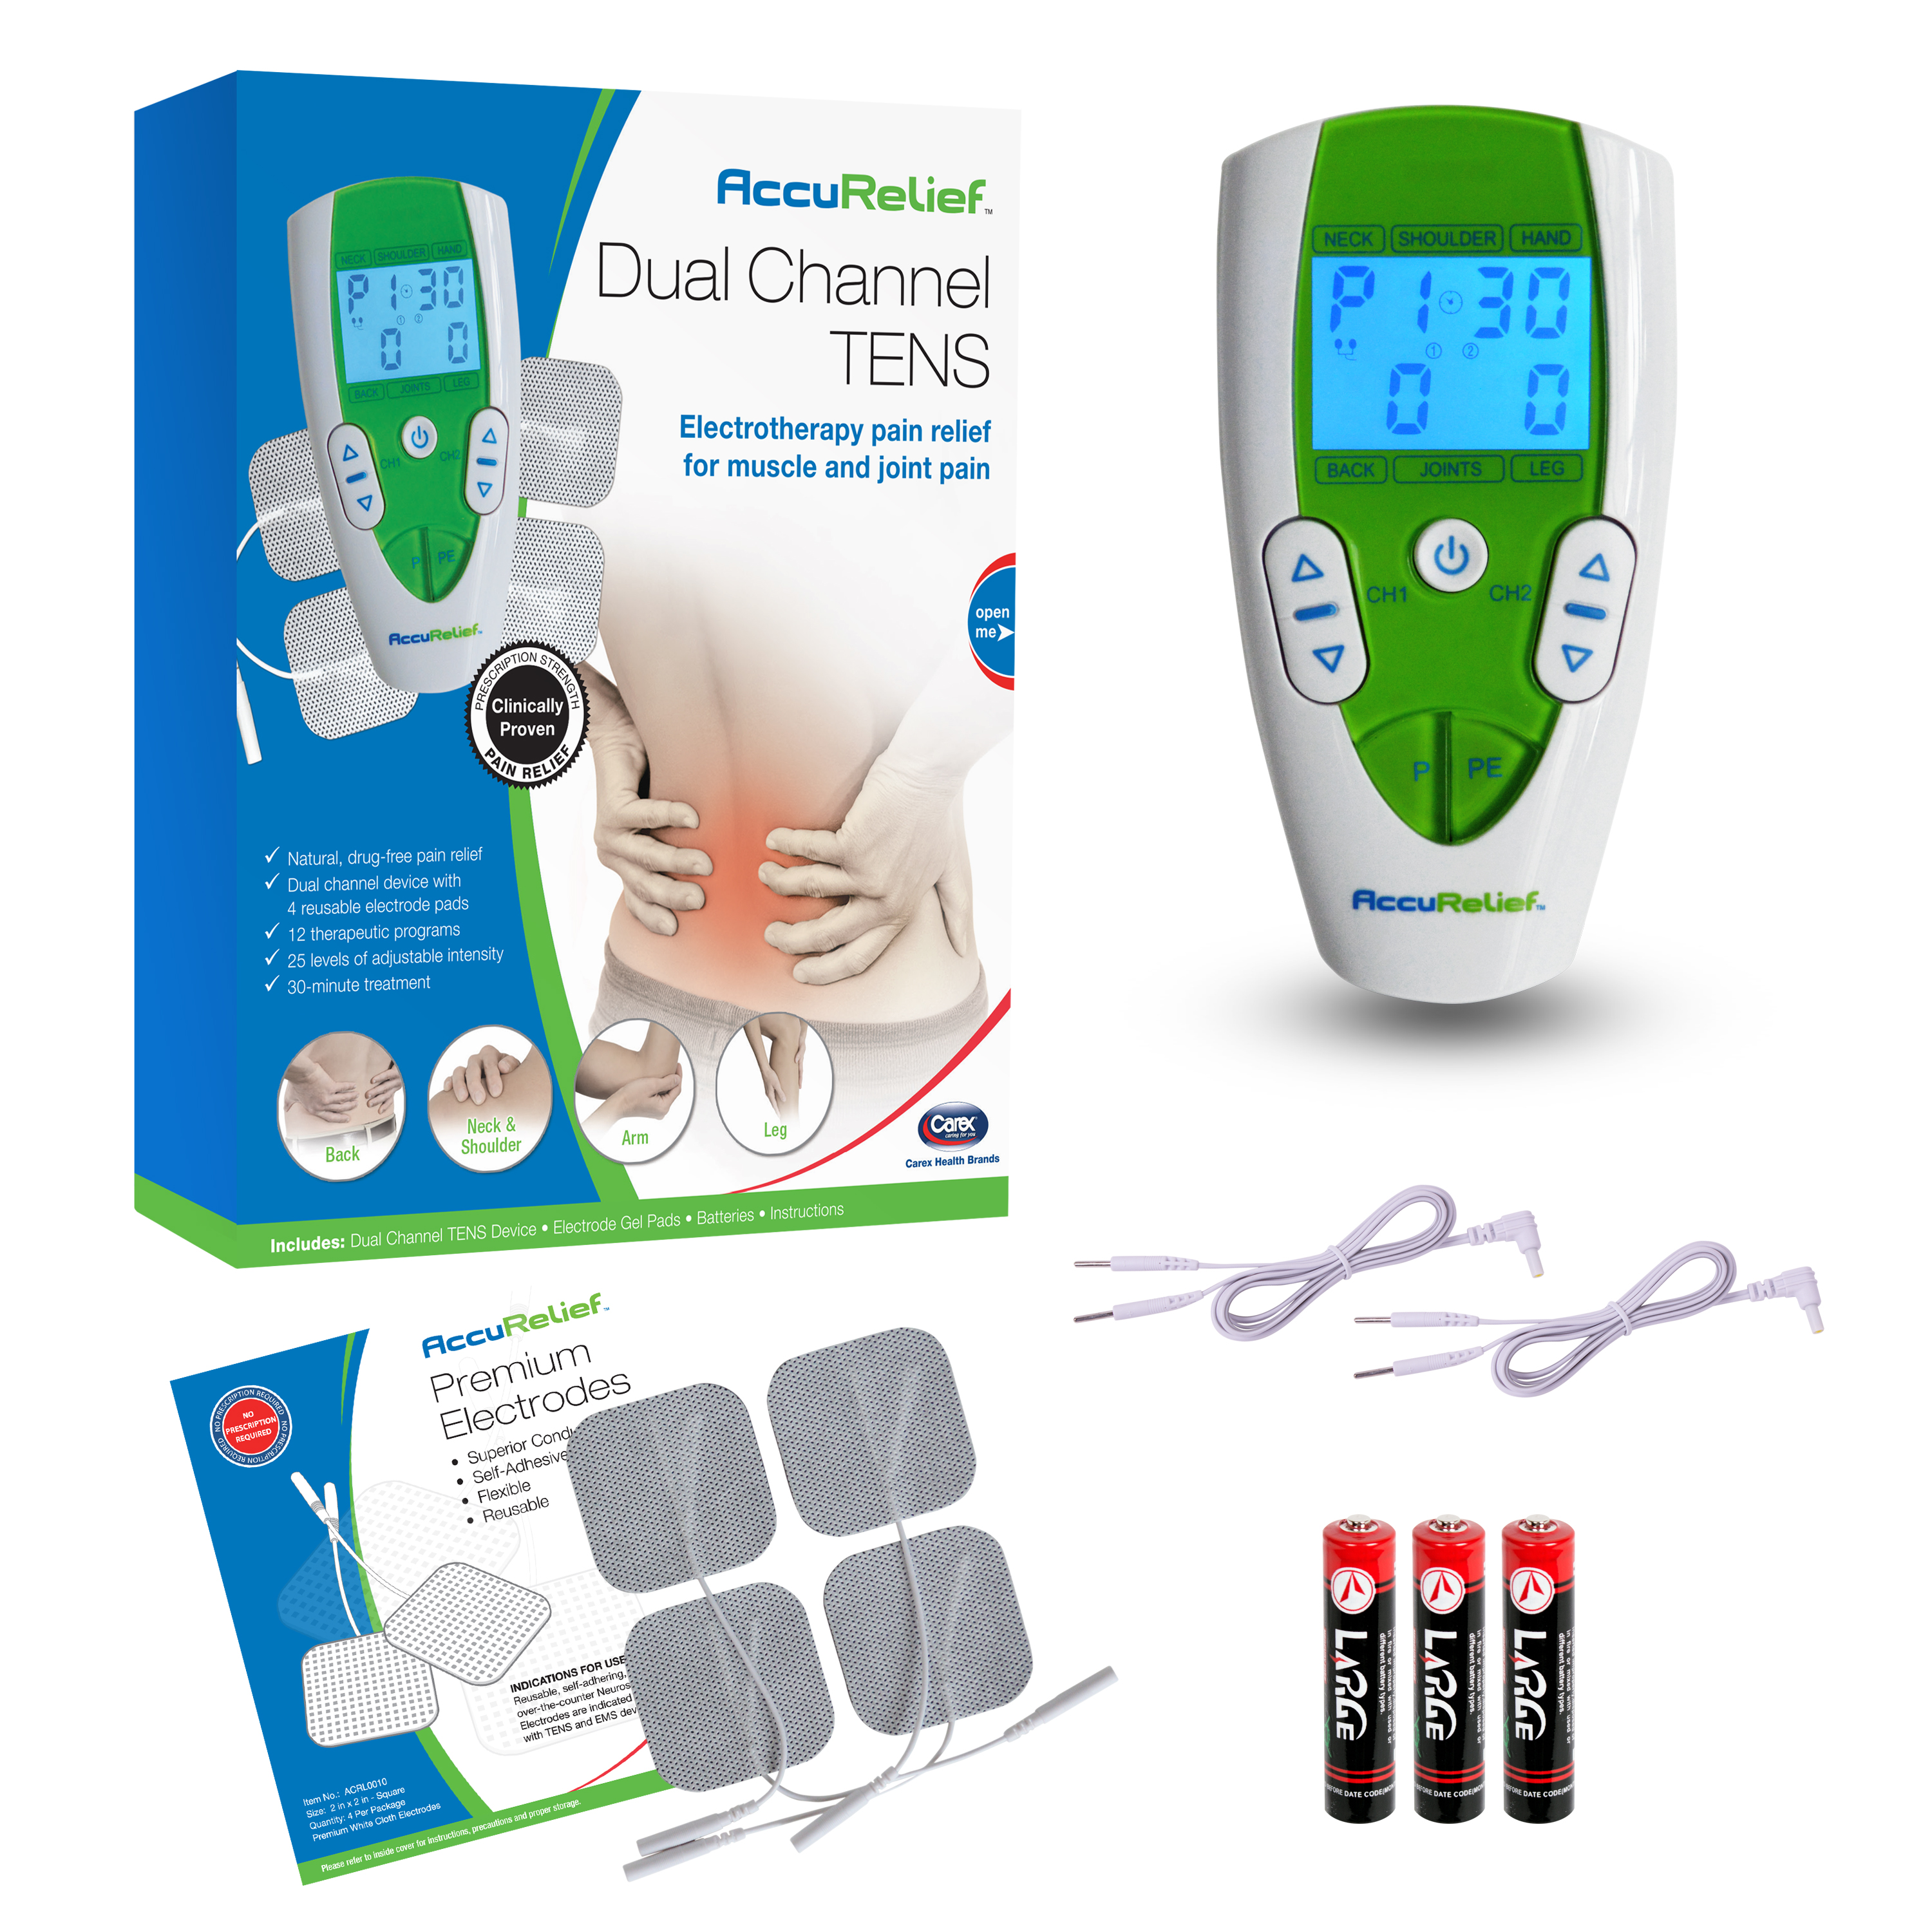 Image of AccuRelief Dual Channel TENS Therapy Electrotherapy Pain Relief System